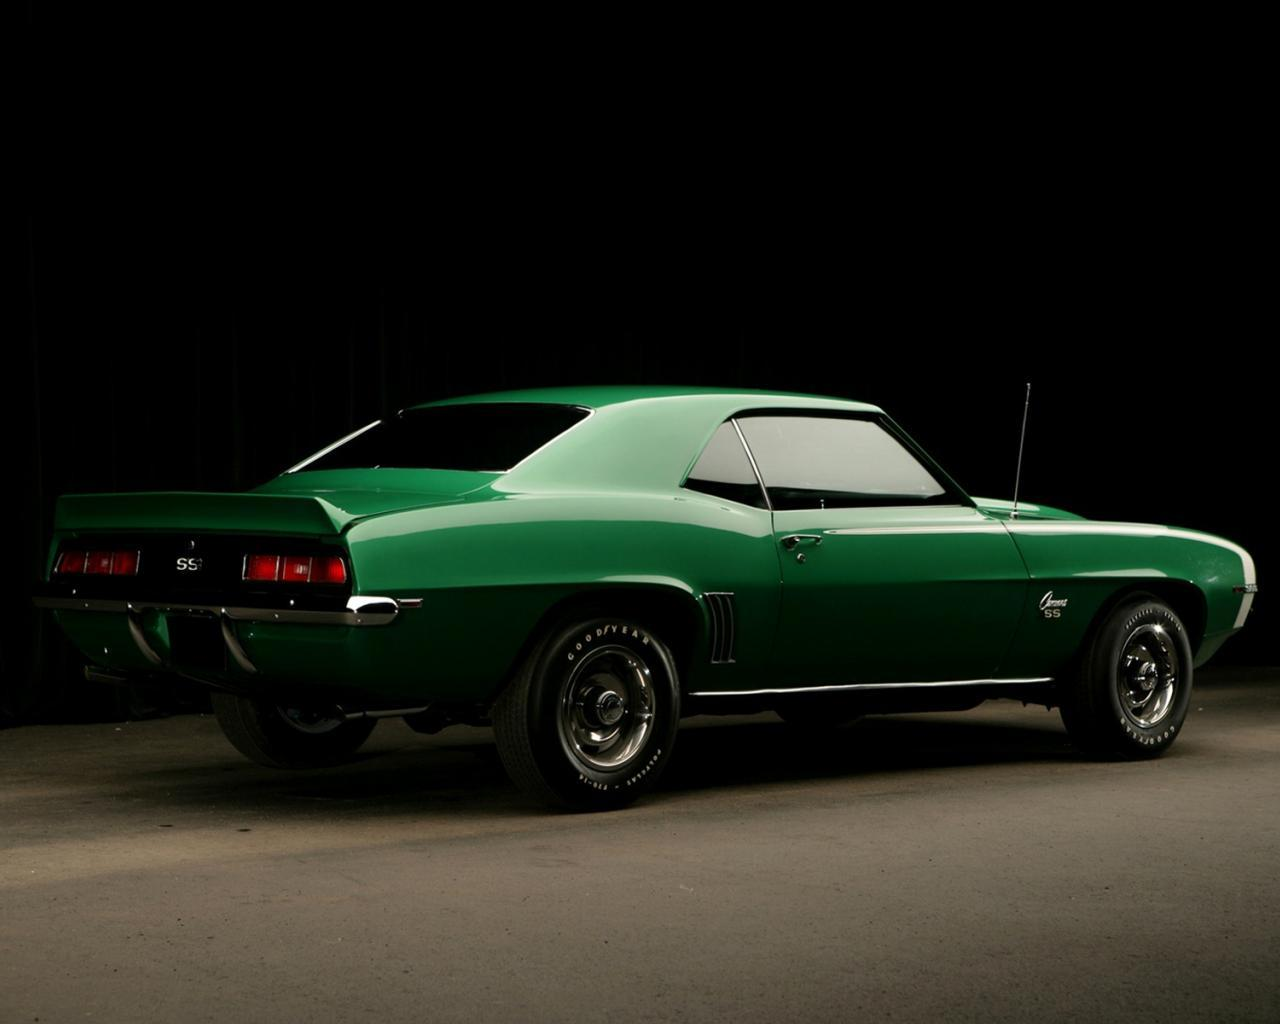 Muscle Car Wallpaper Hd: Free Muscle Car Wallpapers